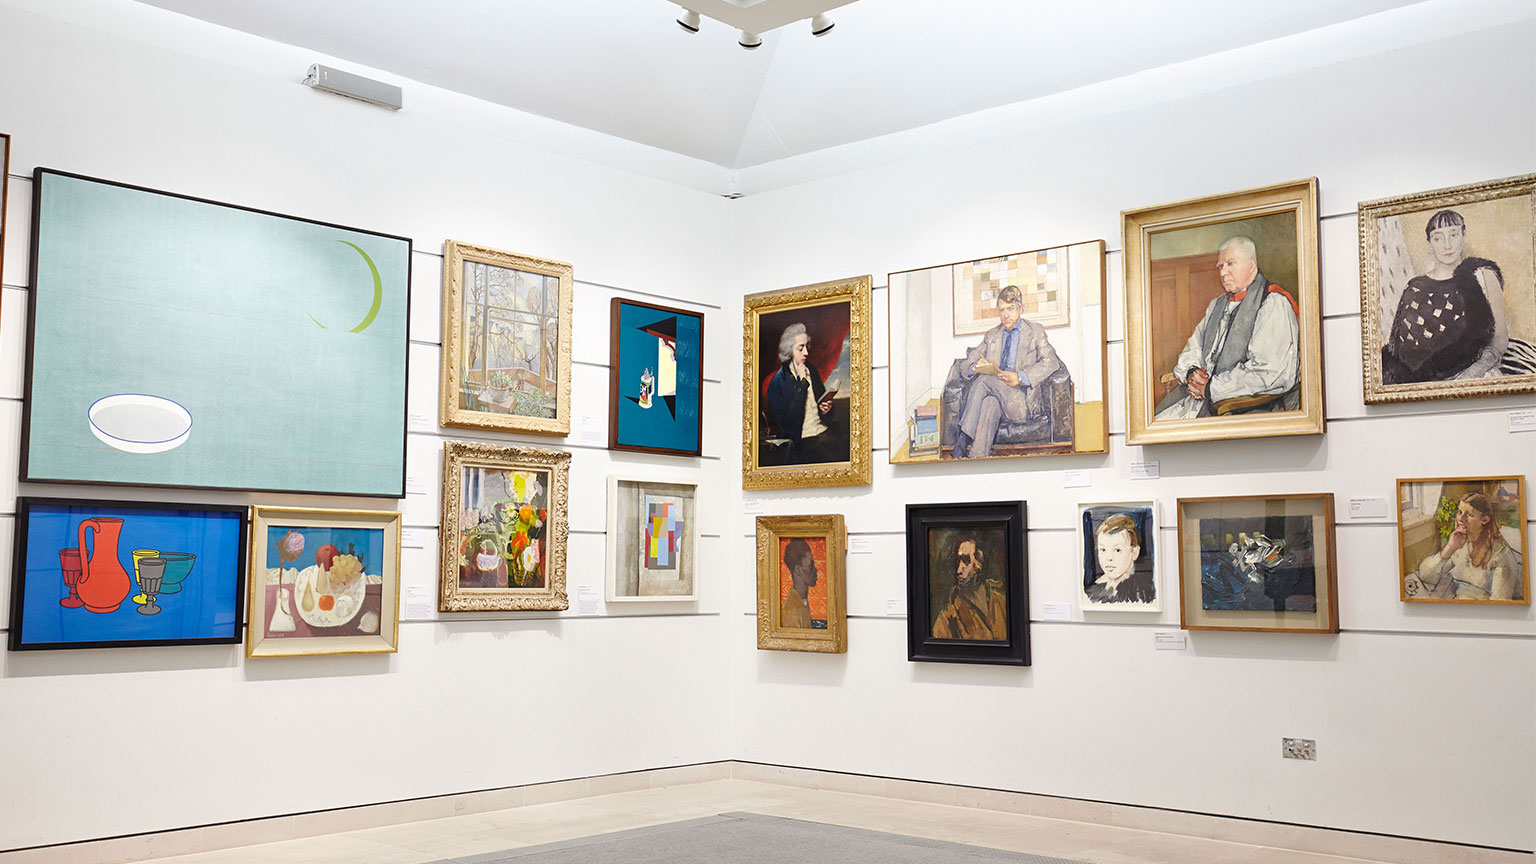 Reserve Collection at Pallant House Gallery, Chichester